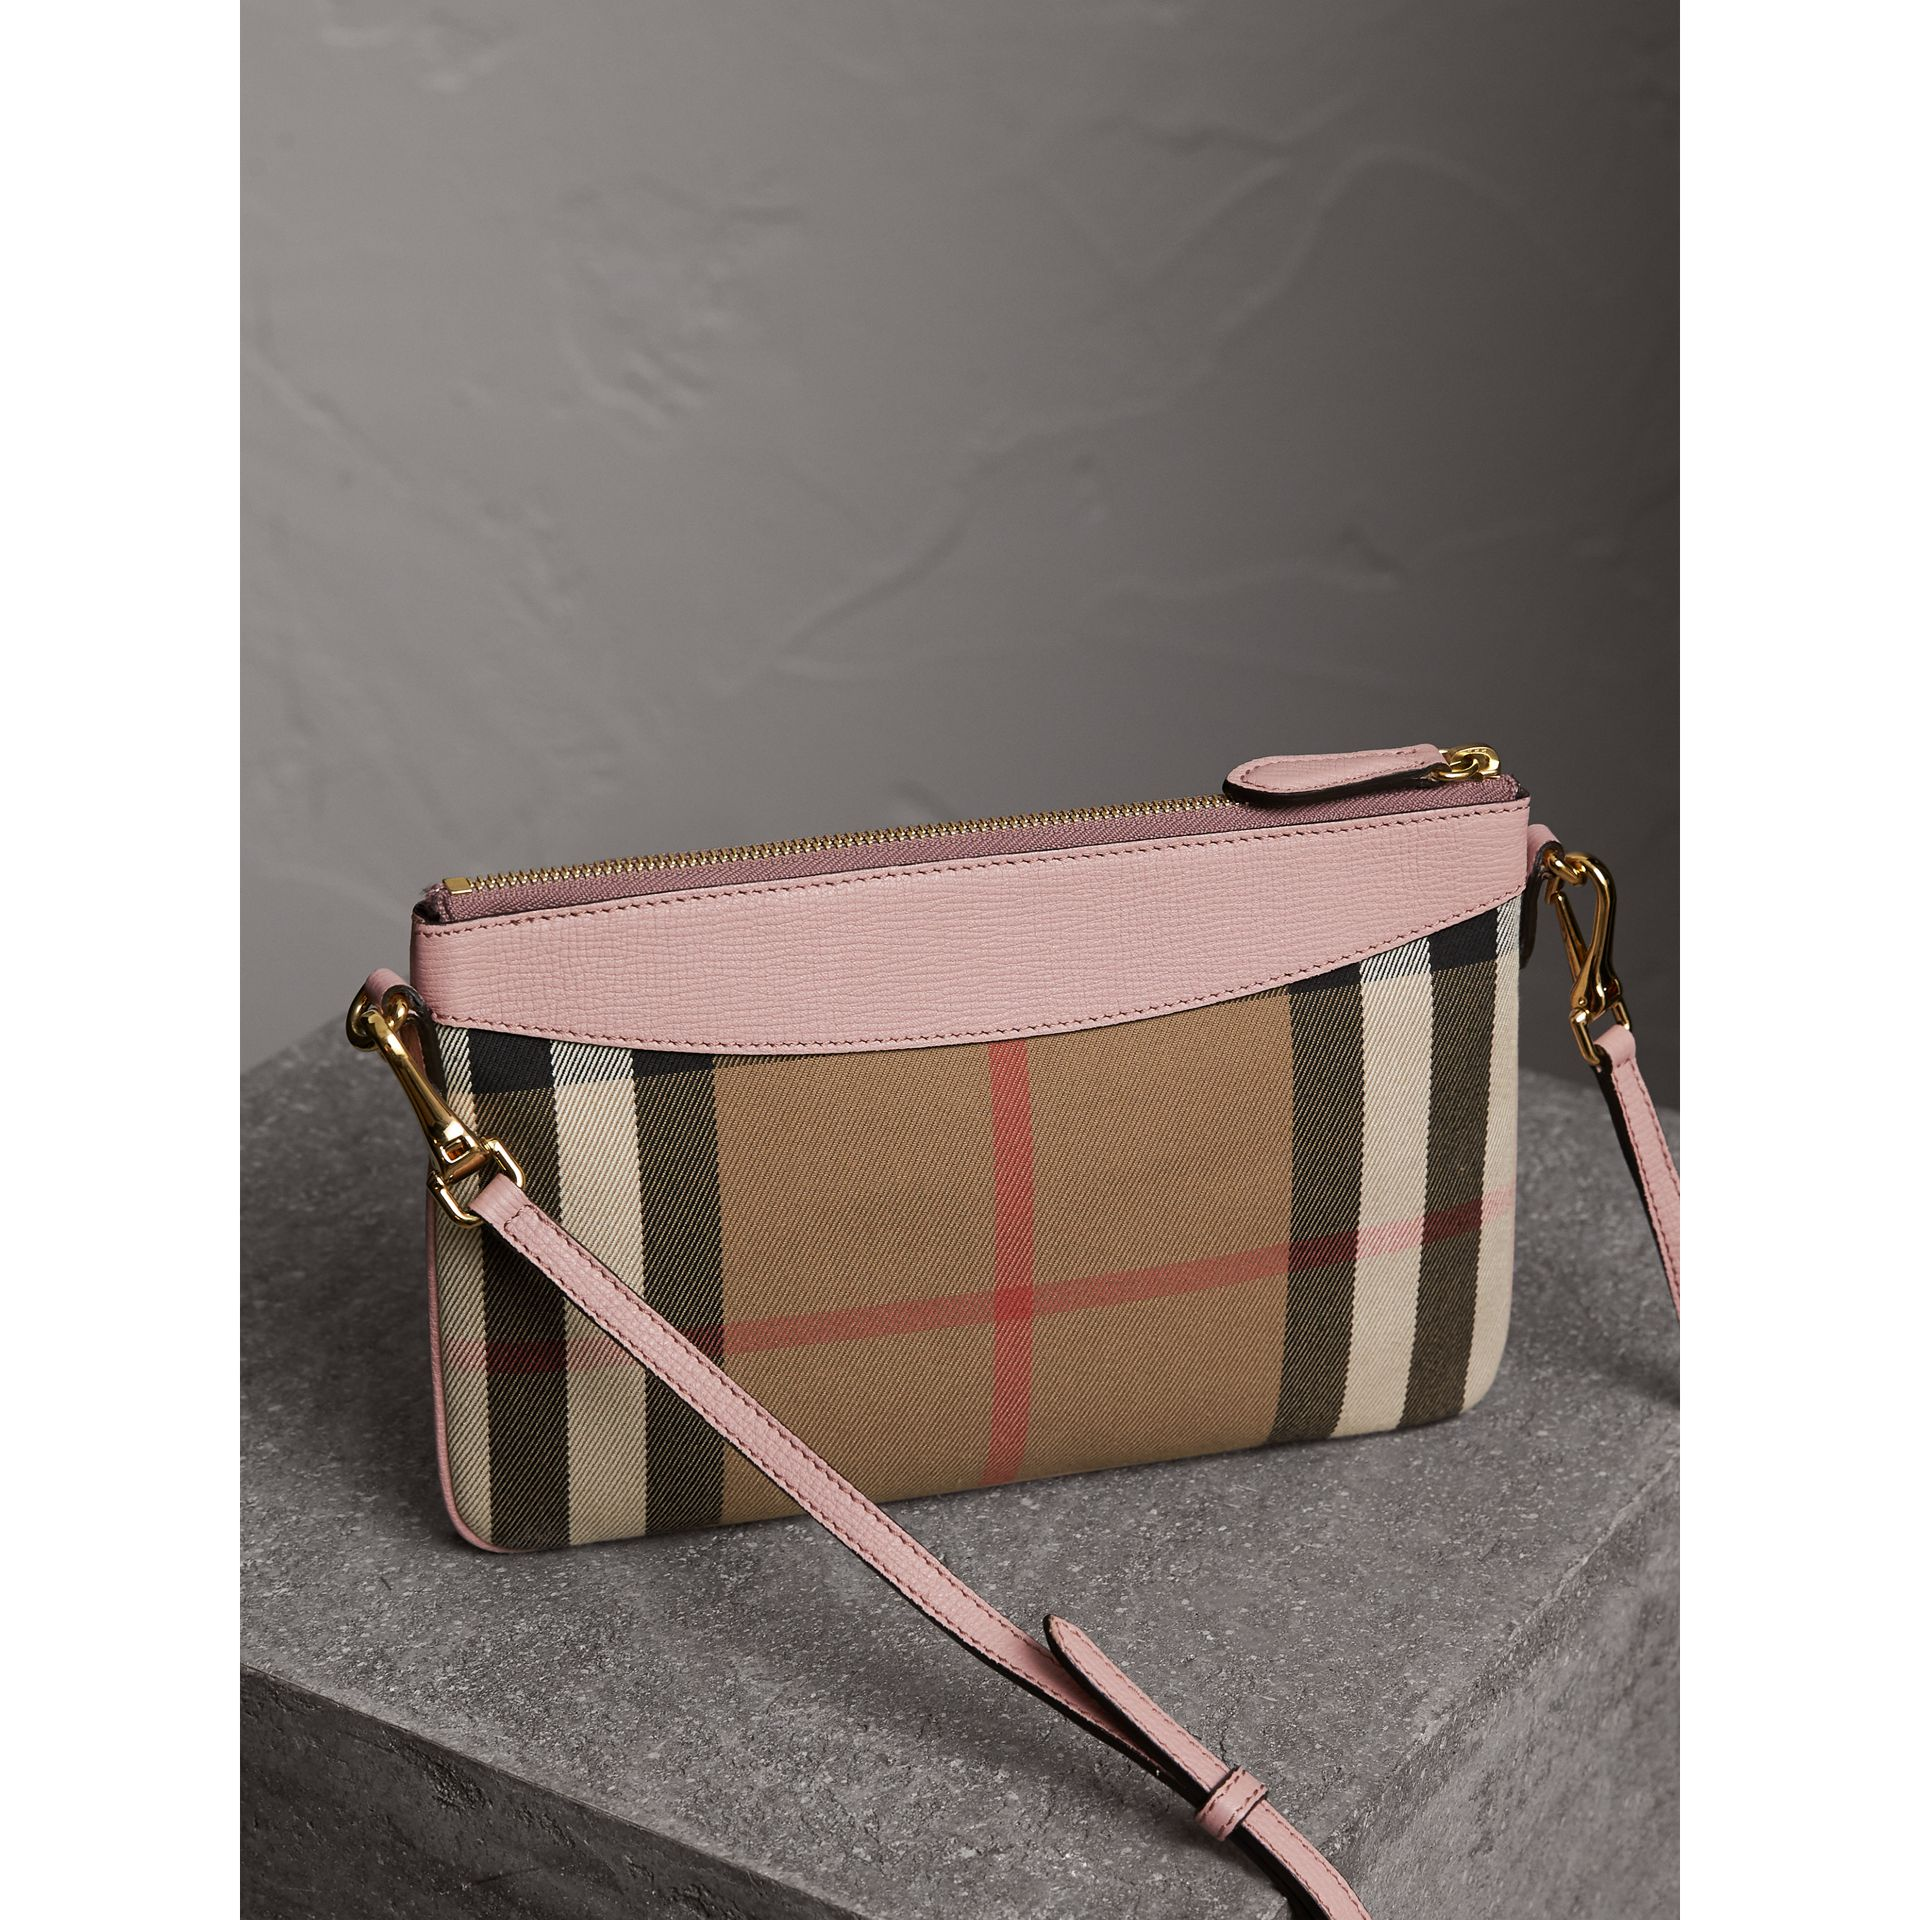 House Check and Leather Clutch Bag in Pale Orchid - Women | Burberry Singapore - gallery image 4